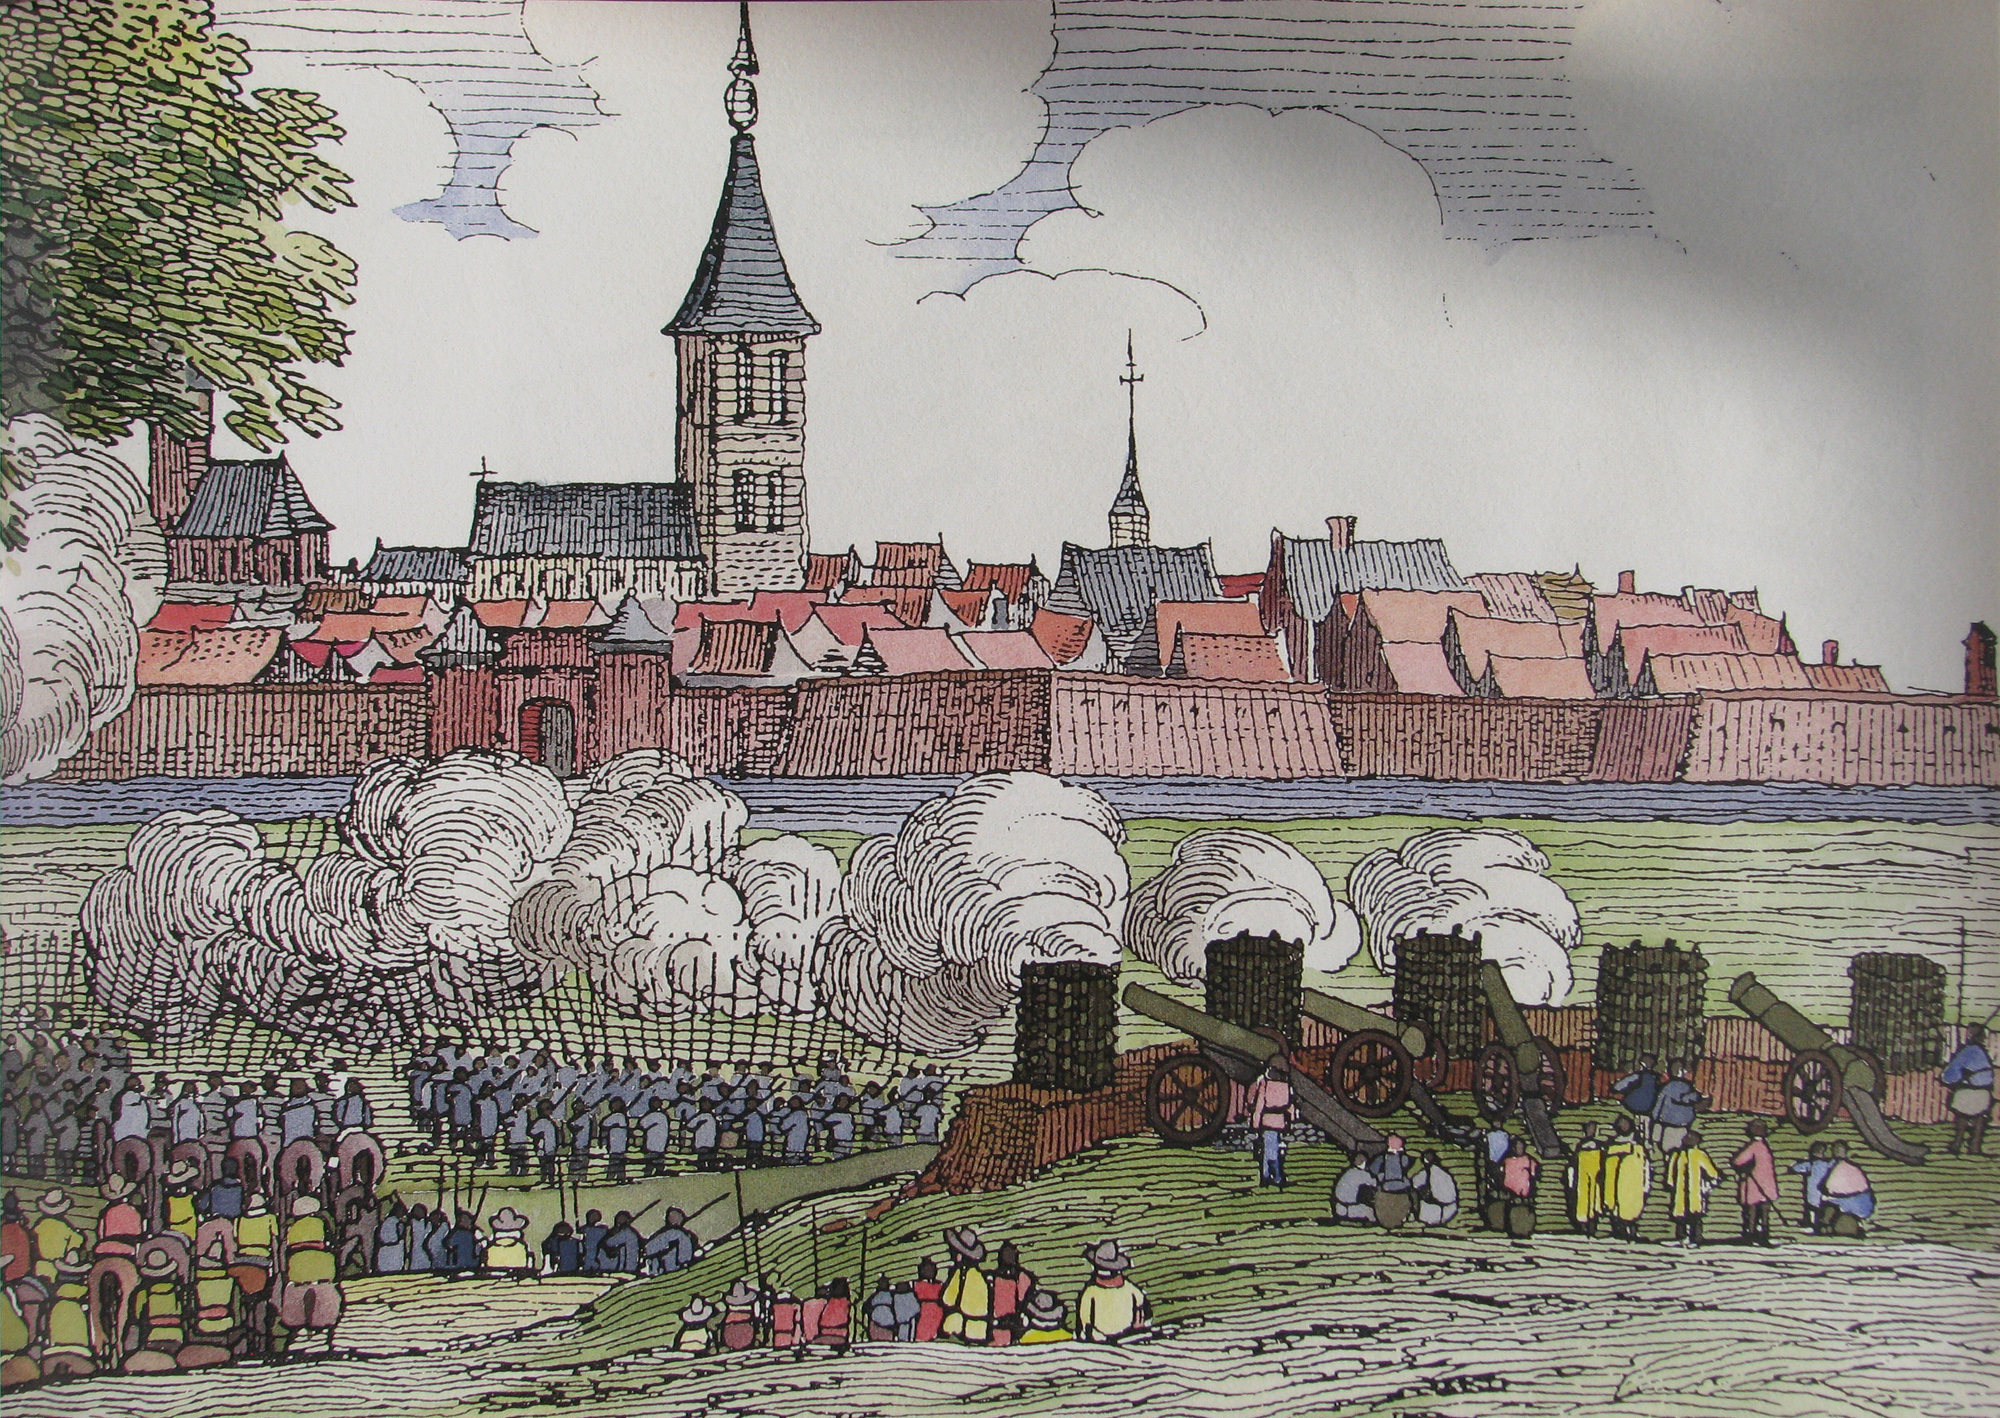 File:View of Grol (Groenlo) in 1595.jpg